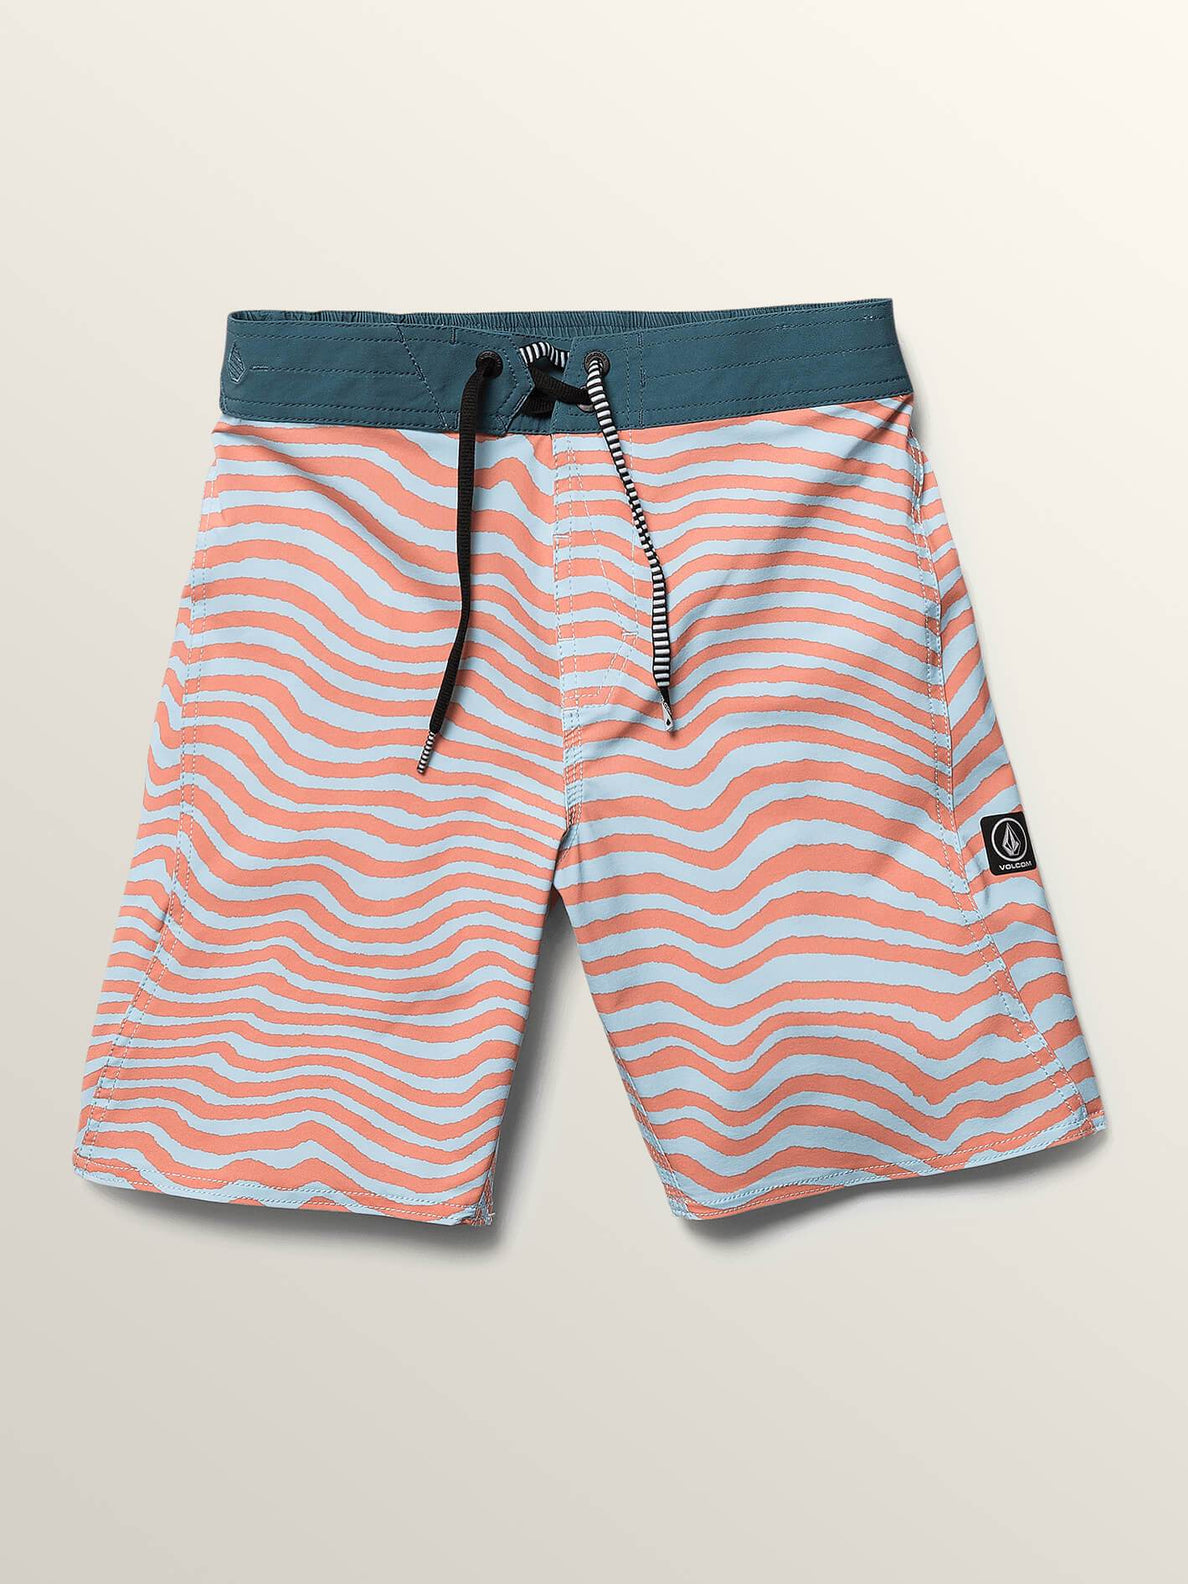 Big Boys Mag Vibes Elastic Boardshorts In Turbo Orange, Front View